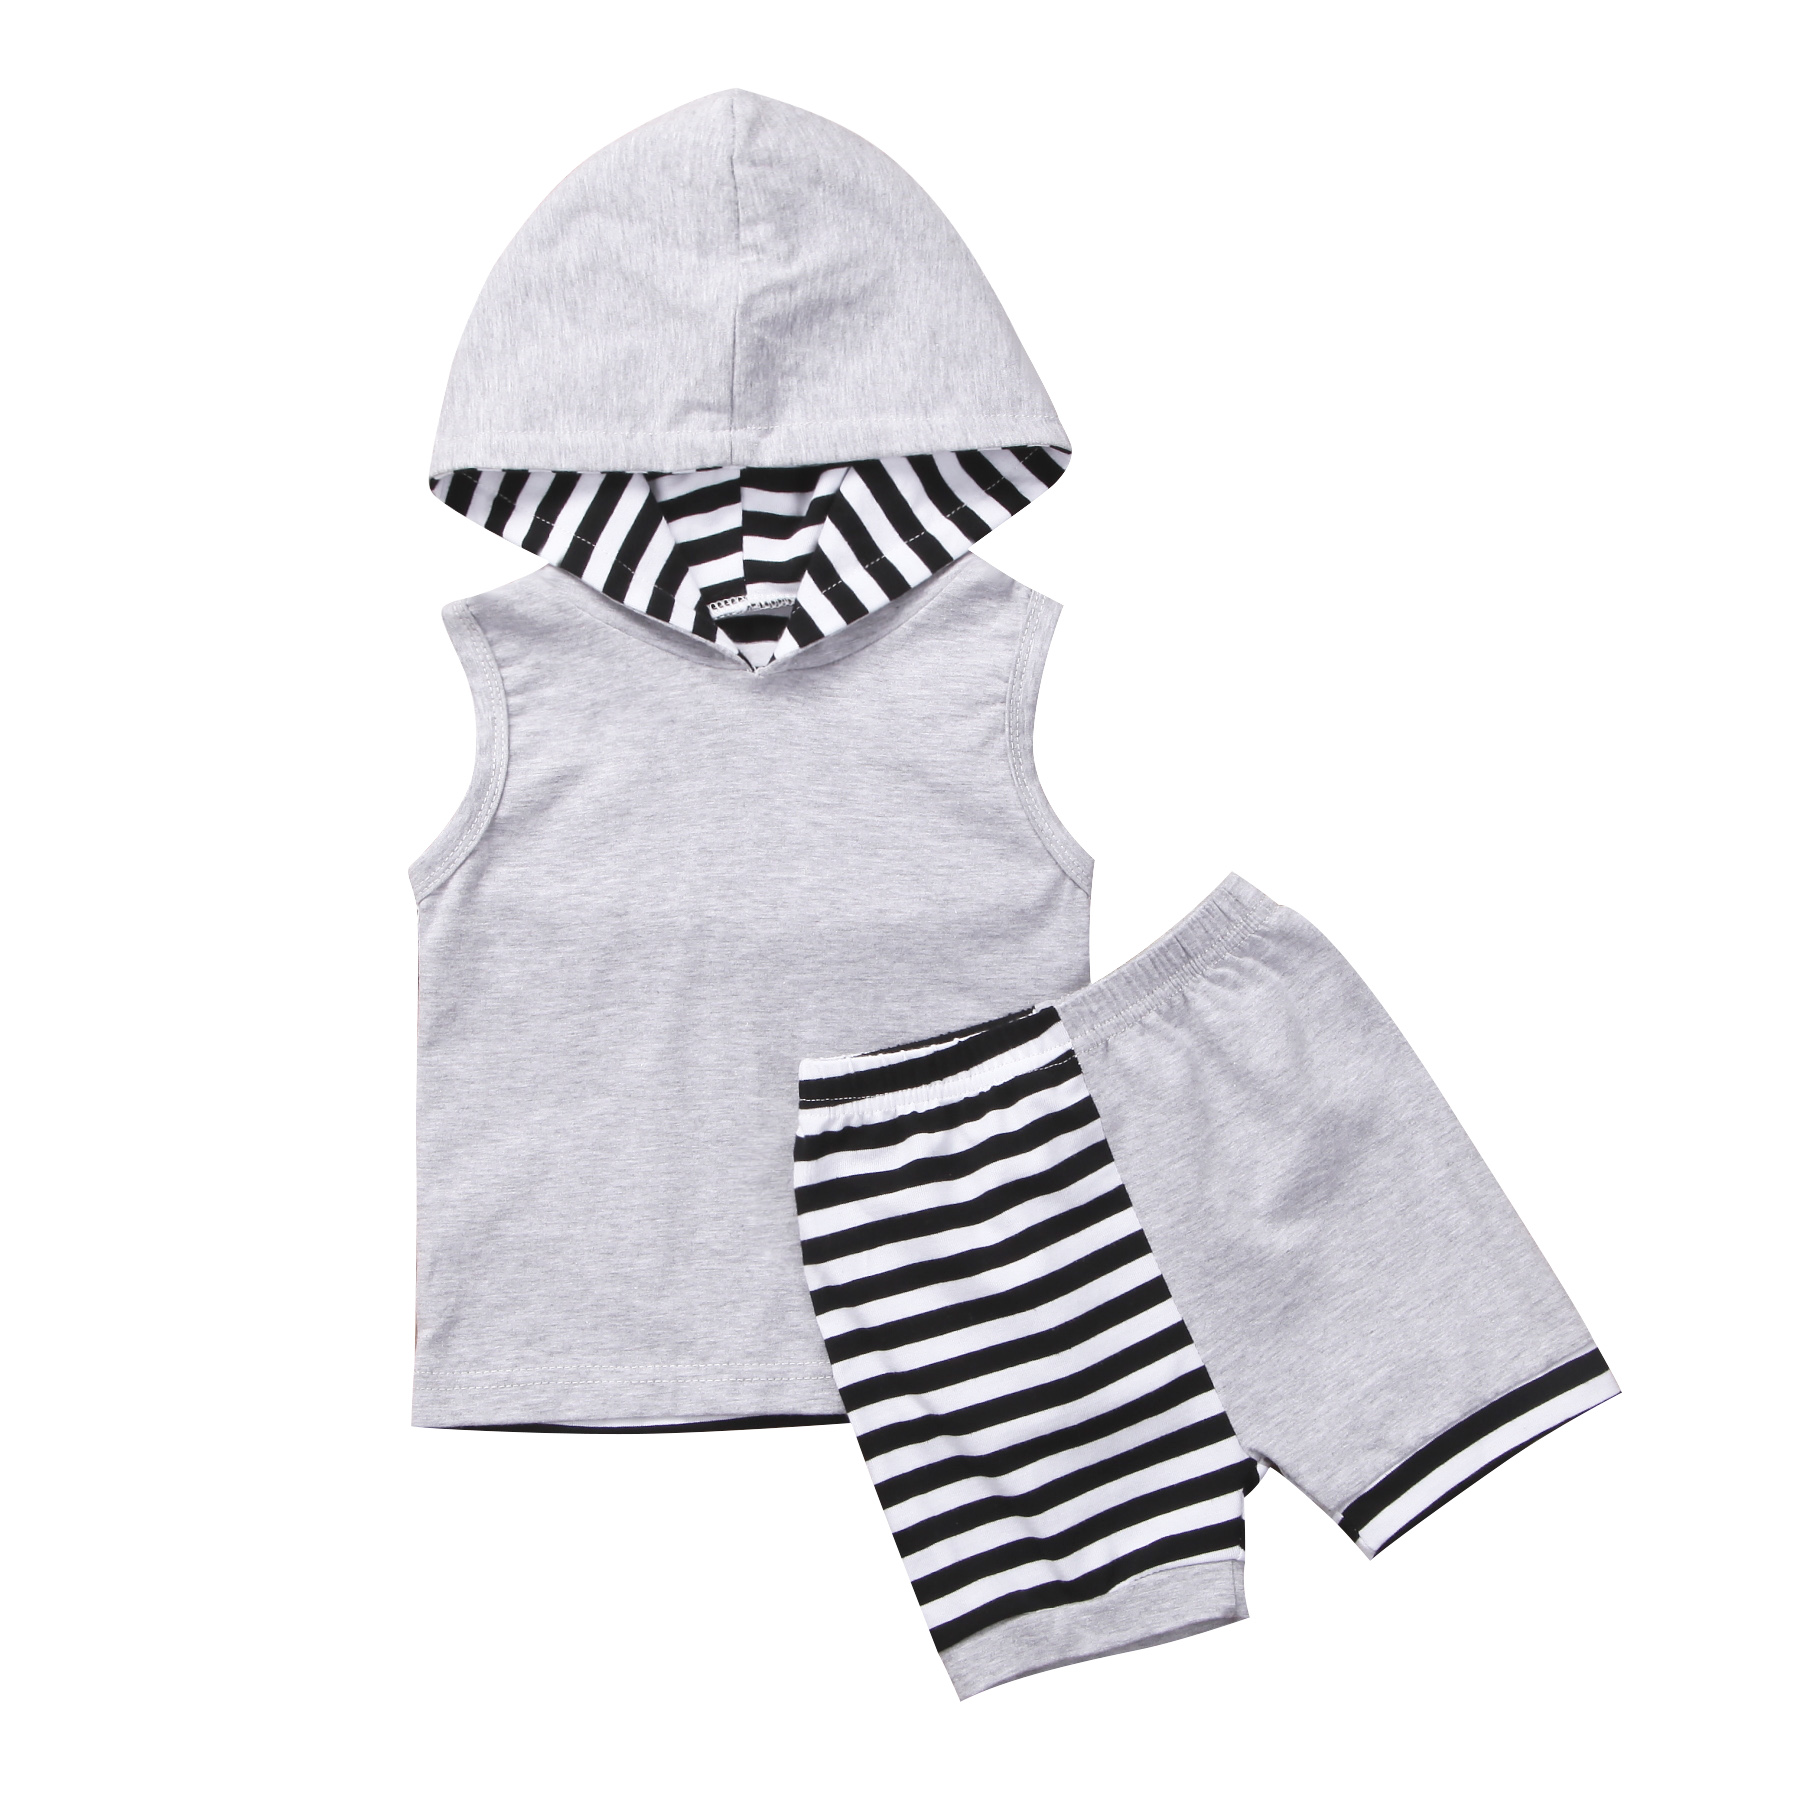 2018 new summer casual Kid Toddler Baby Boy sleeveless Gray Clothes Hoodie Top striped Short Pant cute kid 2pcs Outfit set